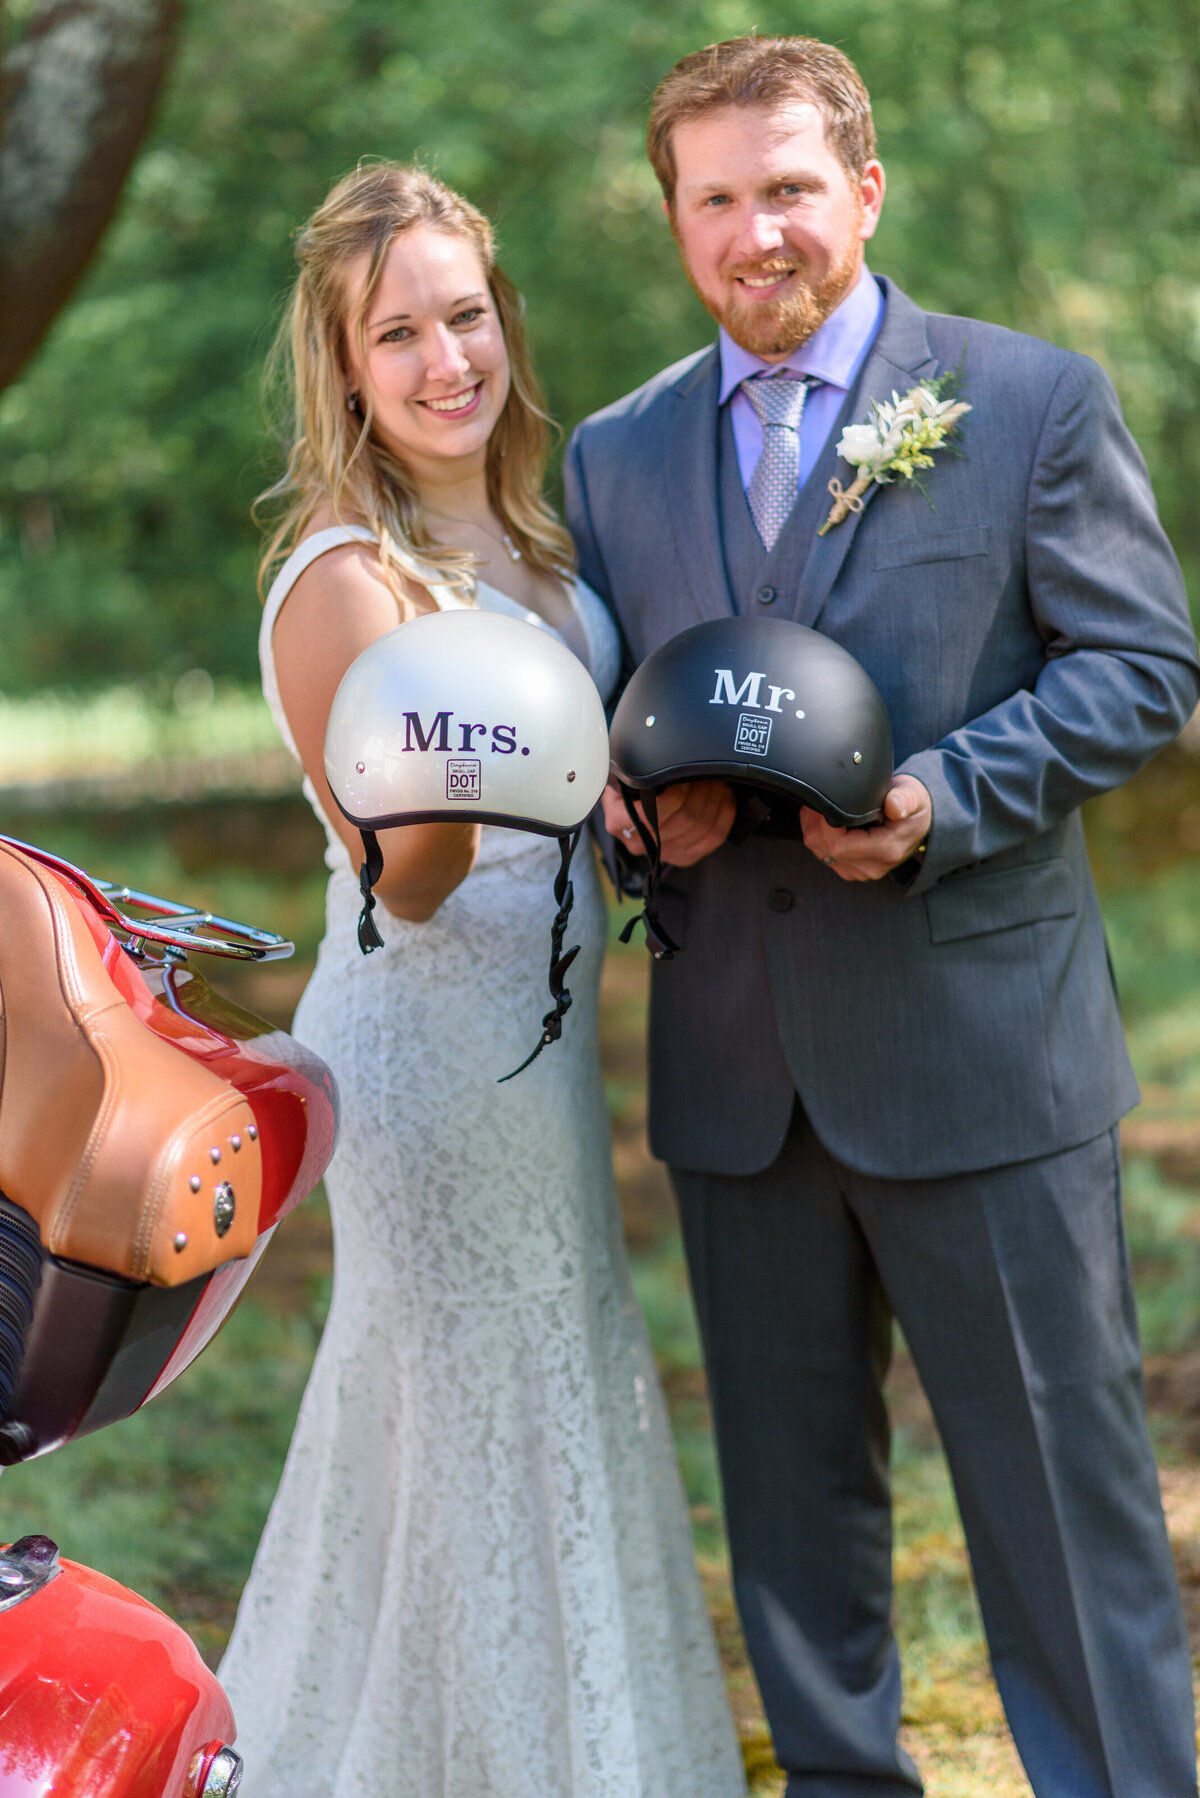 Bride and groom at New Hampshire wedding holding motorcycle helmets